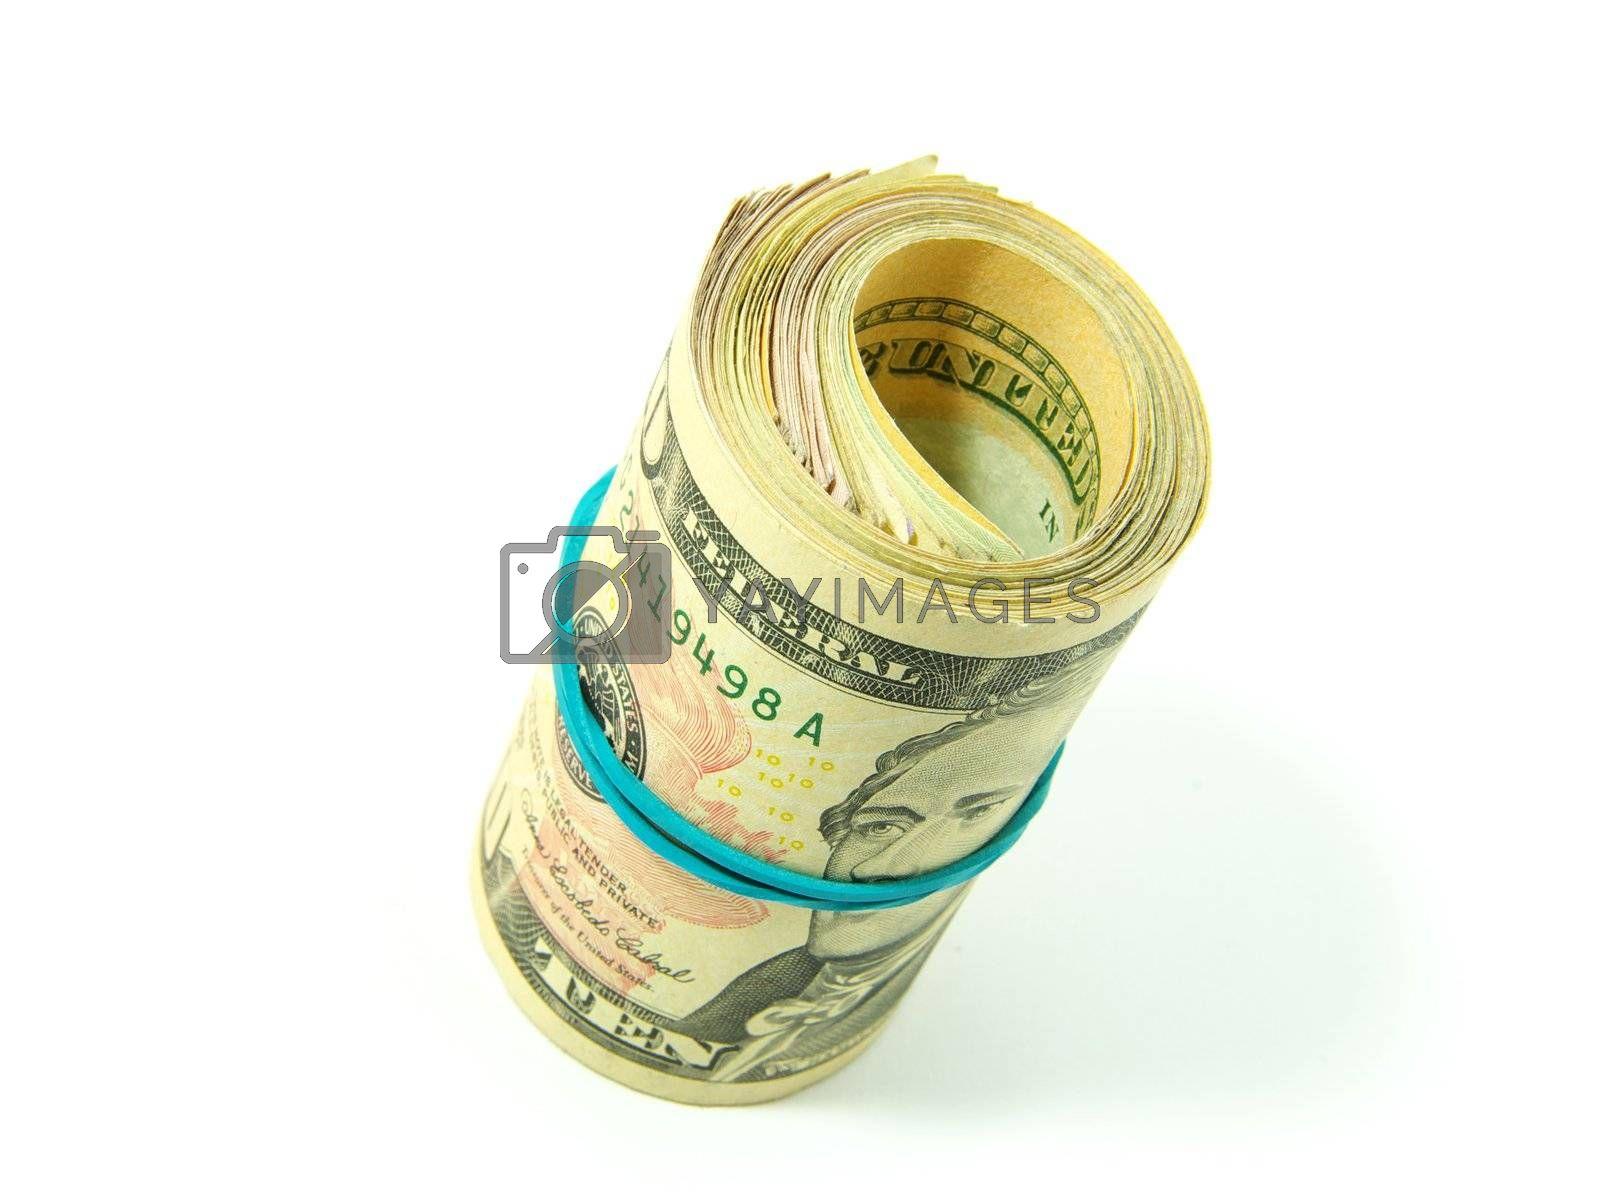 Roll of dollars close-up against white background.